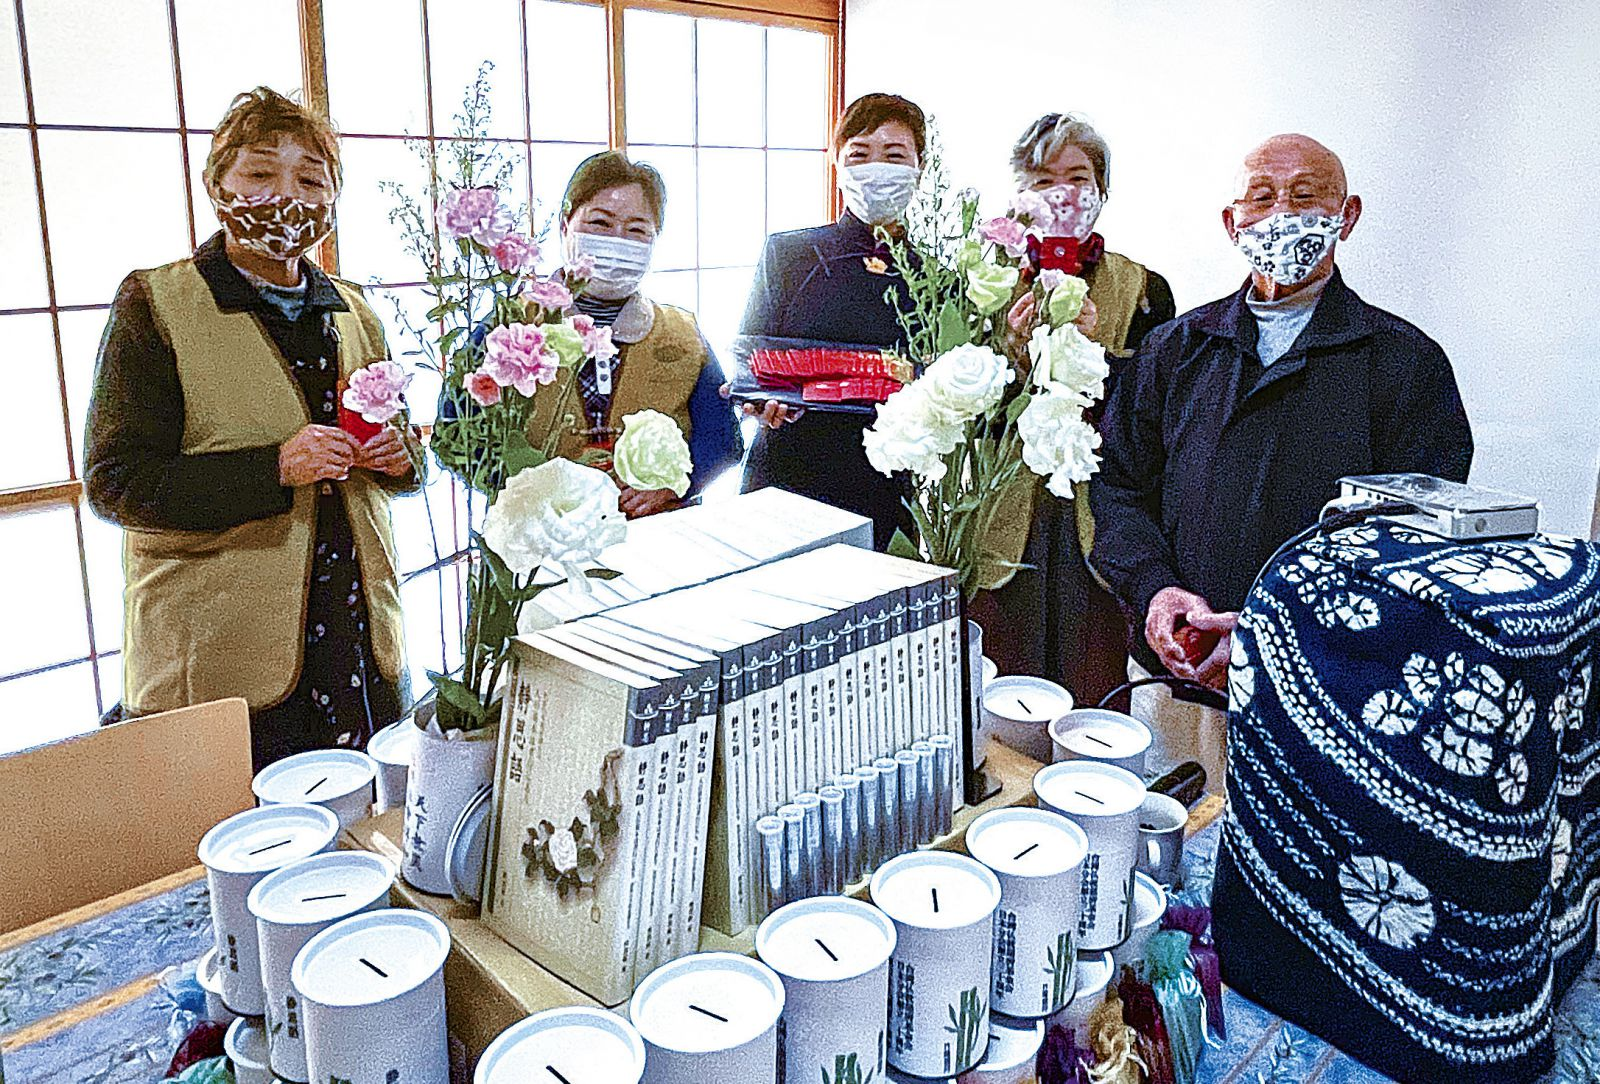 Pooling Together Love for the Greater Good—Tzu Chi in Japan